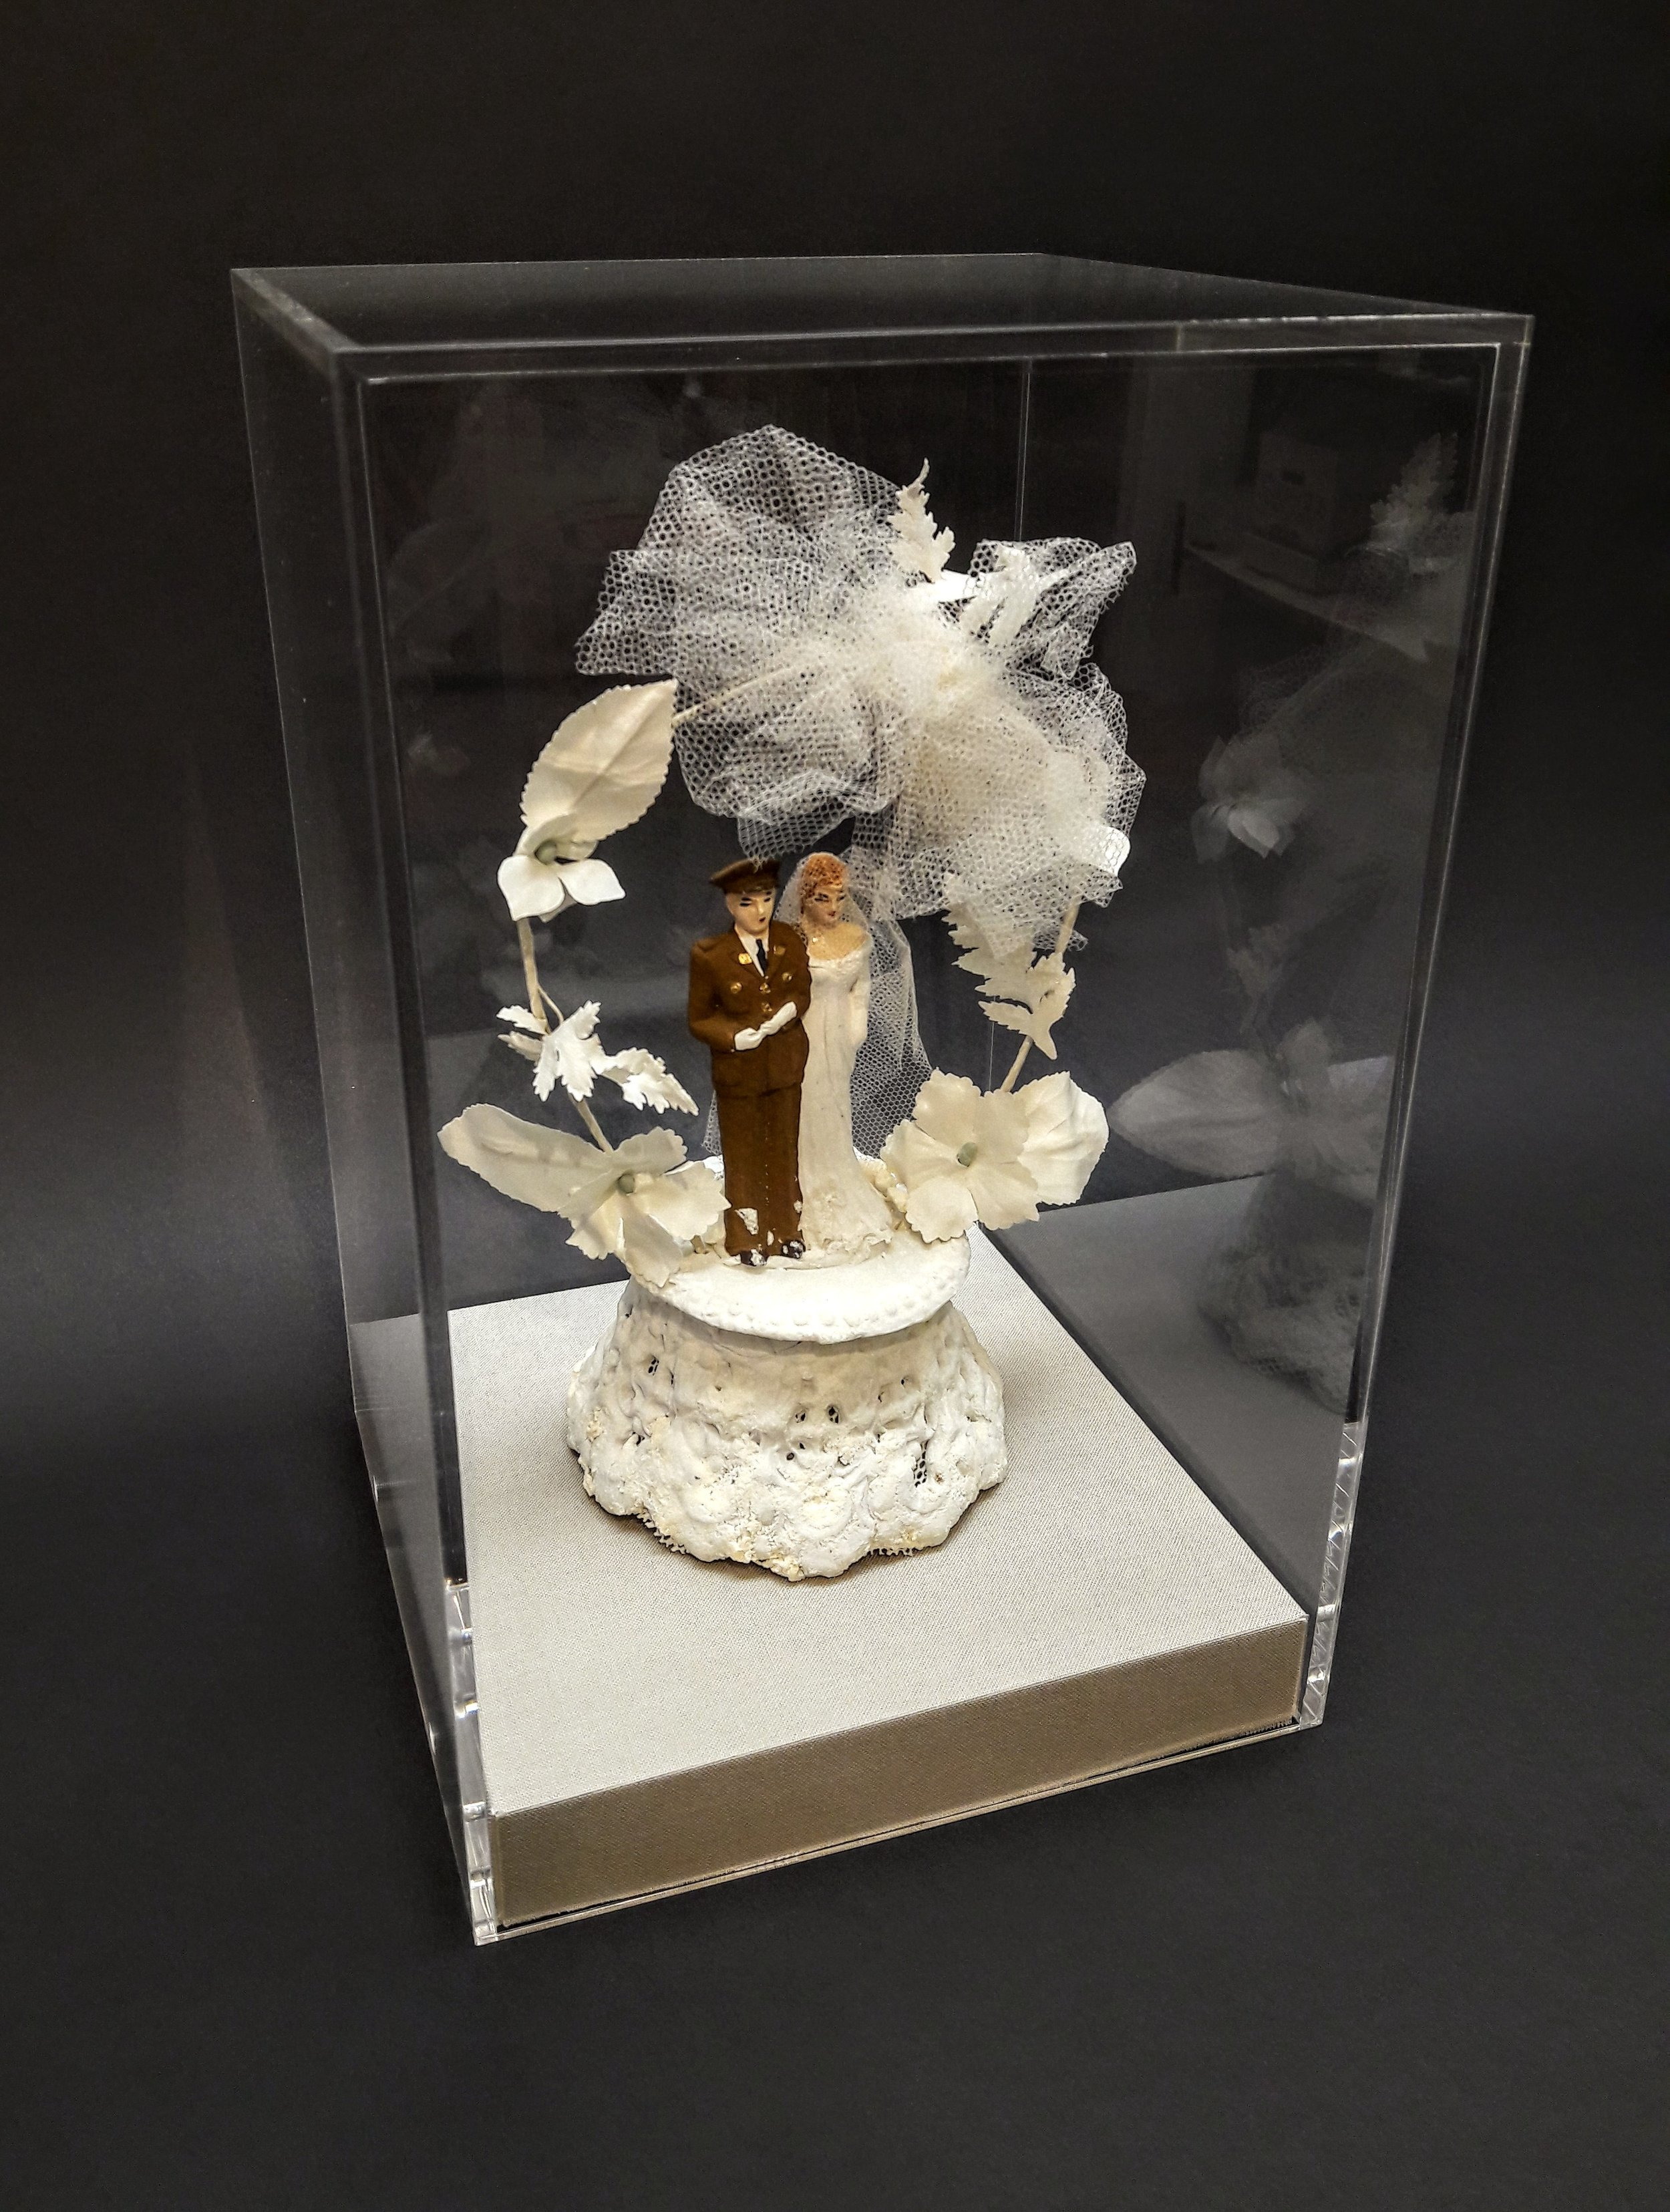 Vintage Cake Topper in Acrylic Box - An acrylic display box is a great solution for many objects. This delicate cake topper was too precious to leave in storage, so we designed a linen platform and clear acrylic display box to protect it.